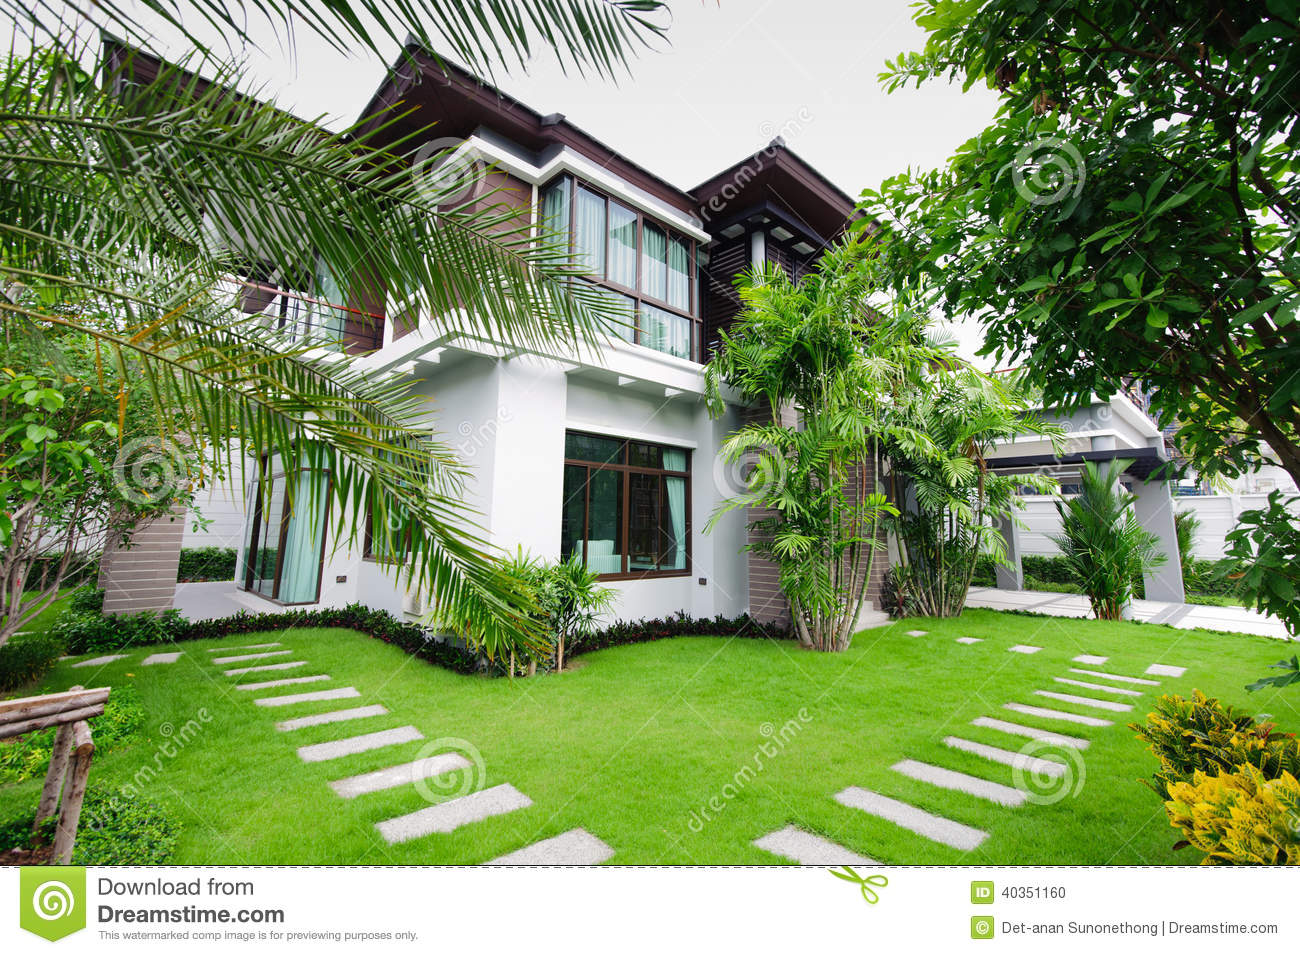 Maison moderne dans le jardin photo stock image 40351160 for Photo de jardin moderne